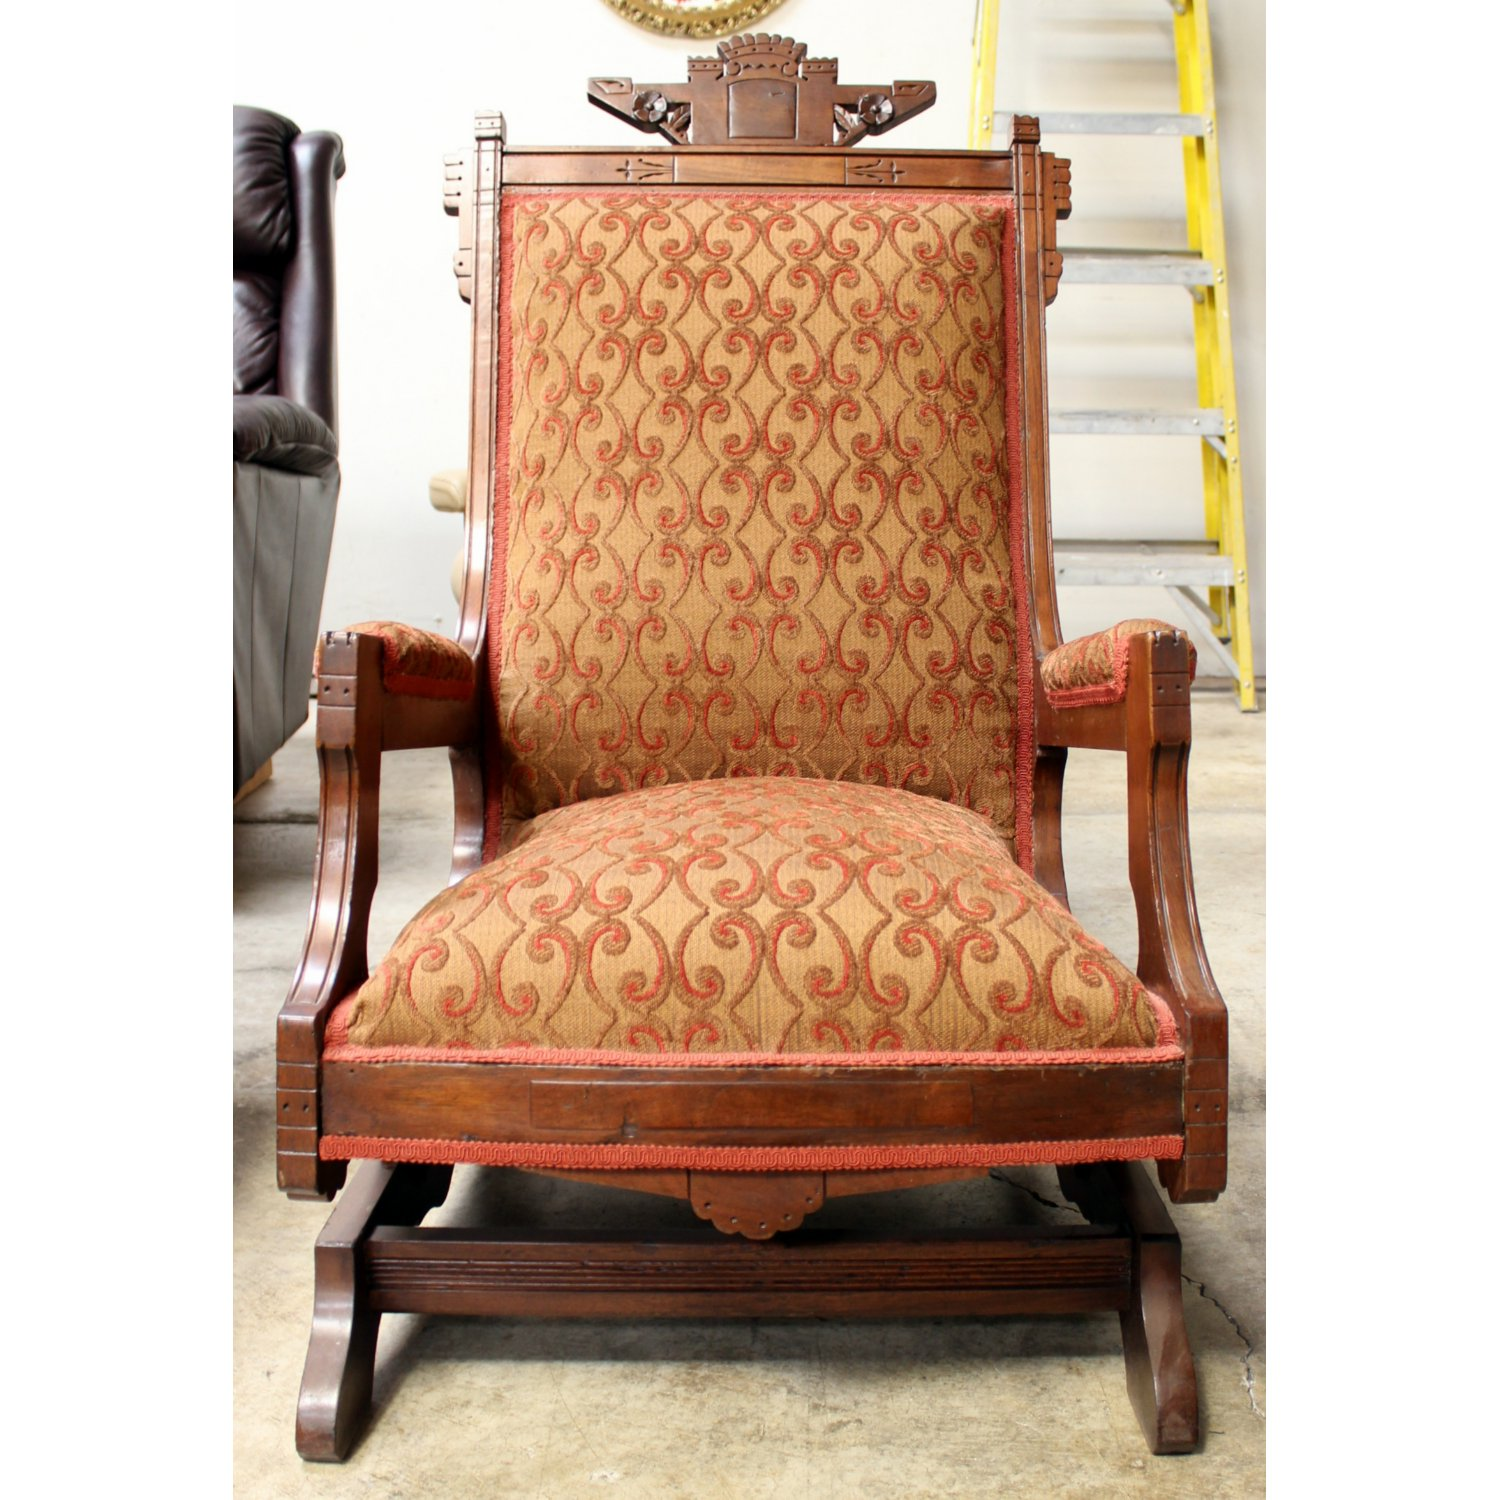 Antique upholstered rocking chairs - Heritage Furniture Antique Rocking Chair Guide To Buying Stylish Accent Chairs